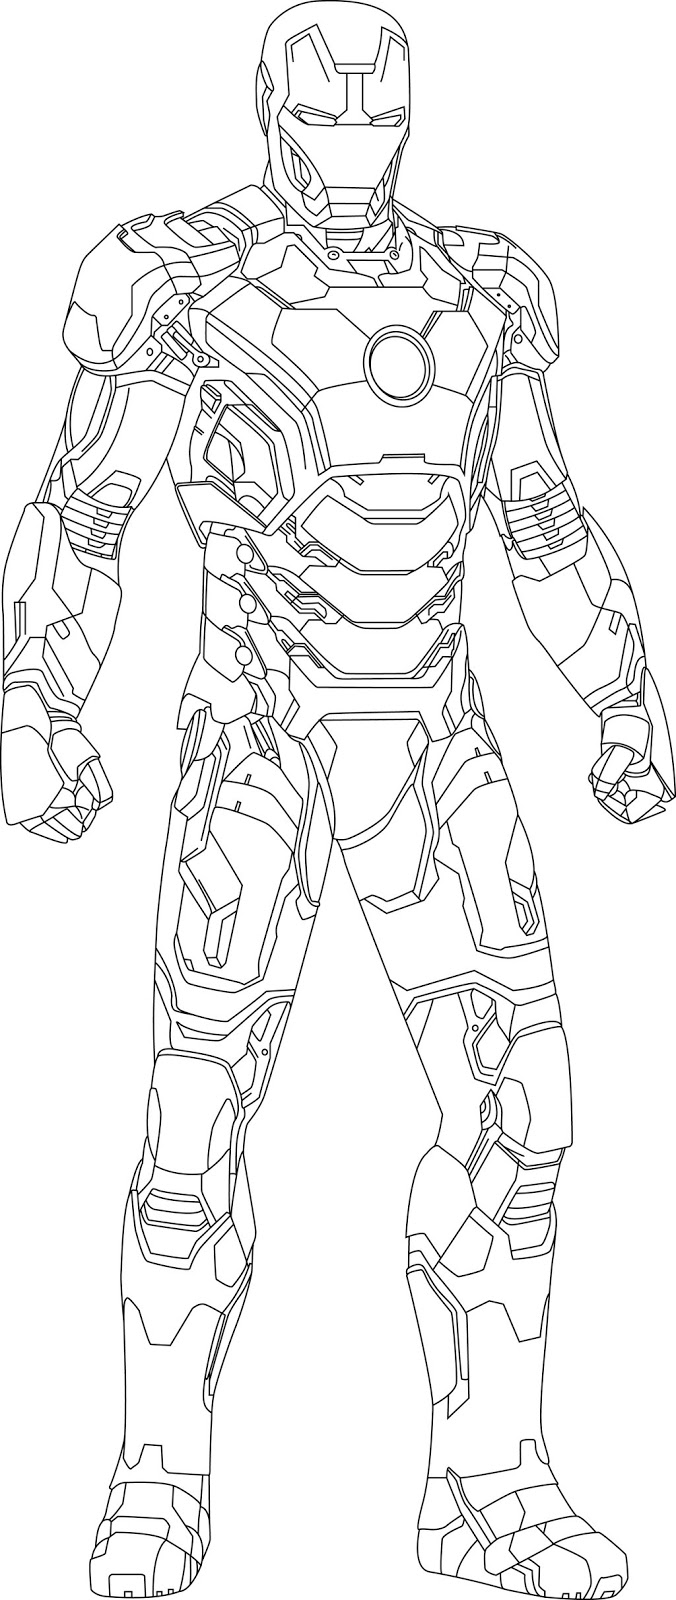 iron man coloring picture free printable iron man coloring pages for kids best man iron picture coloring